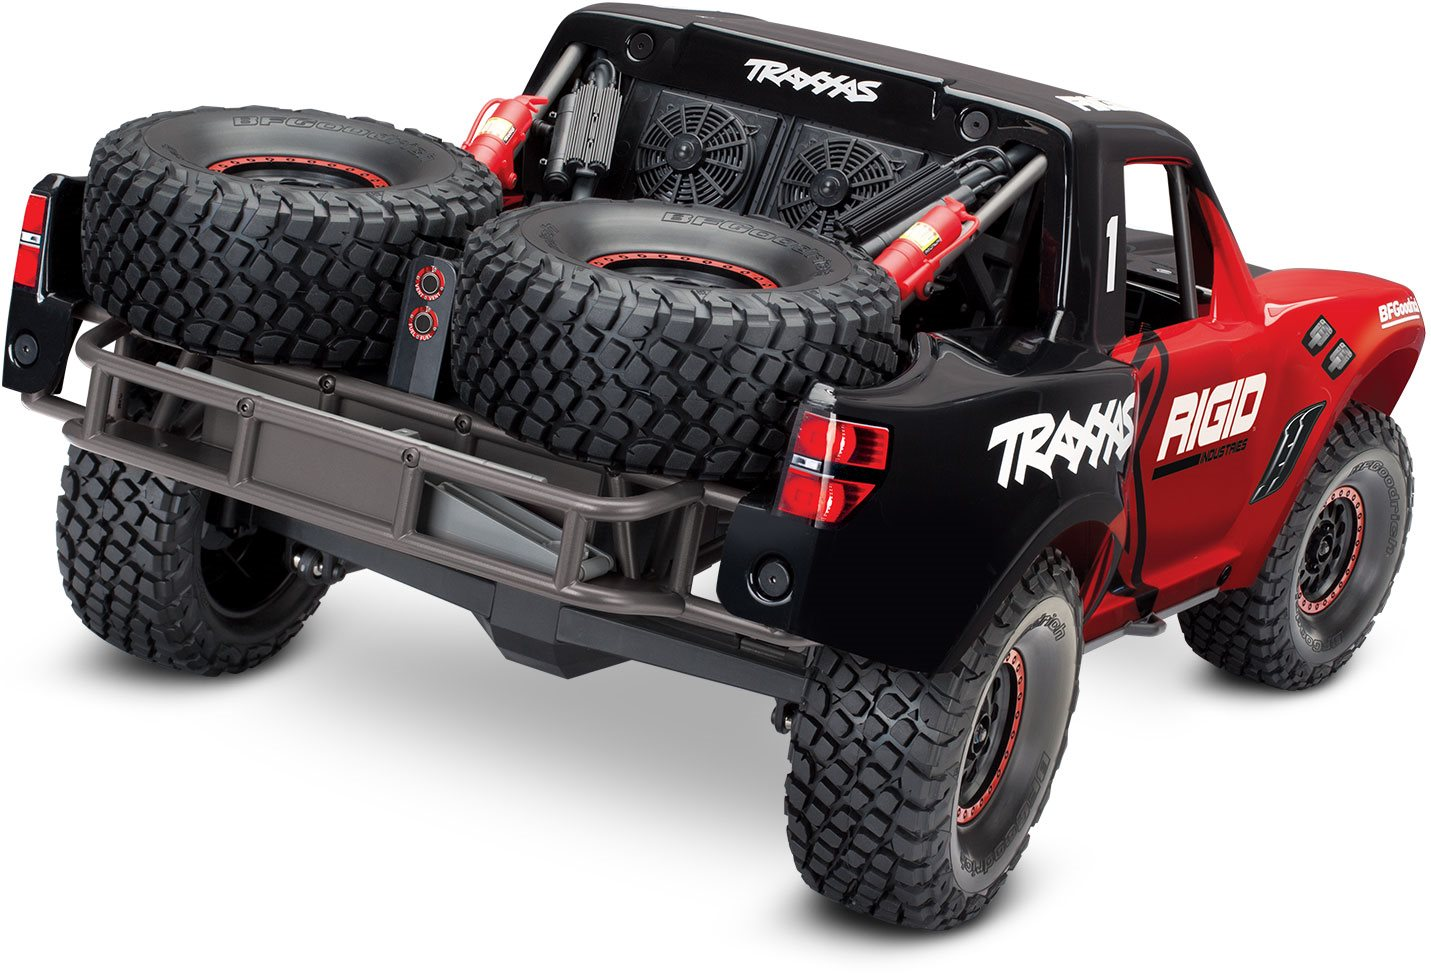 airplane models to build with Traxxas Unlimited Desert Racer Tra85076 P 196098 on 60516 additionally Tbd 1 Devastator 148 Great Wall Hobby together with Build arii a706 as well Watch besides Slipstream Aircraft.